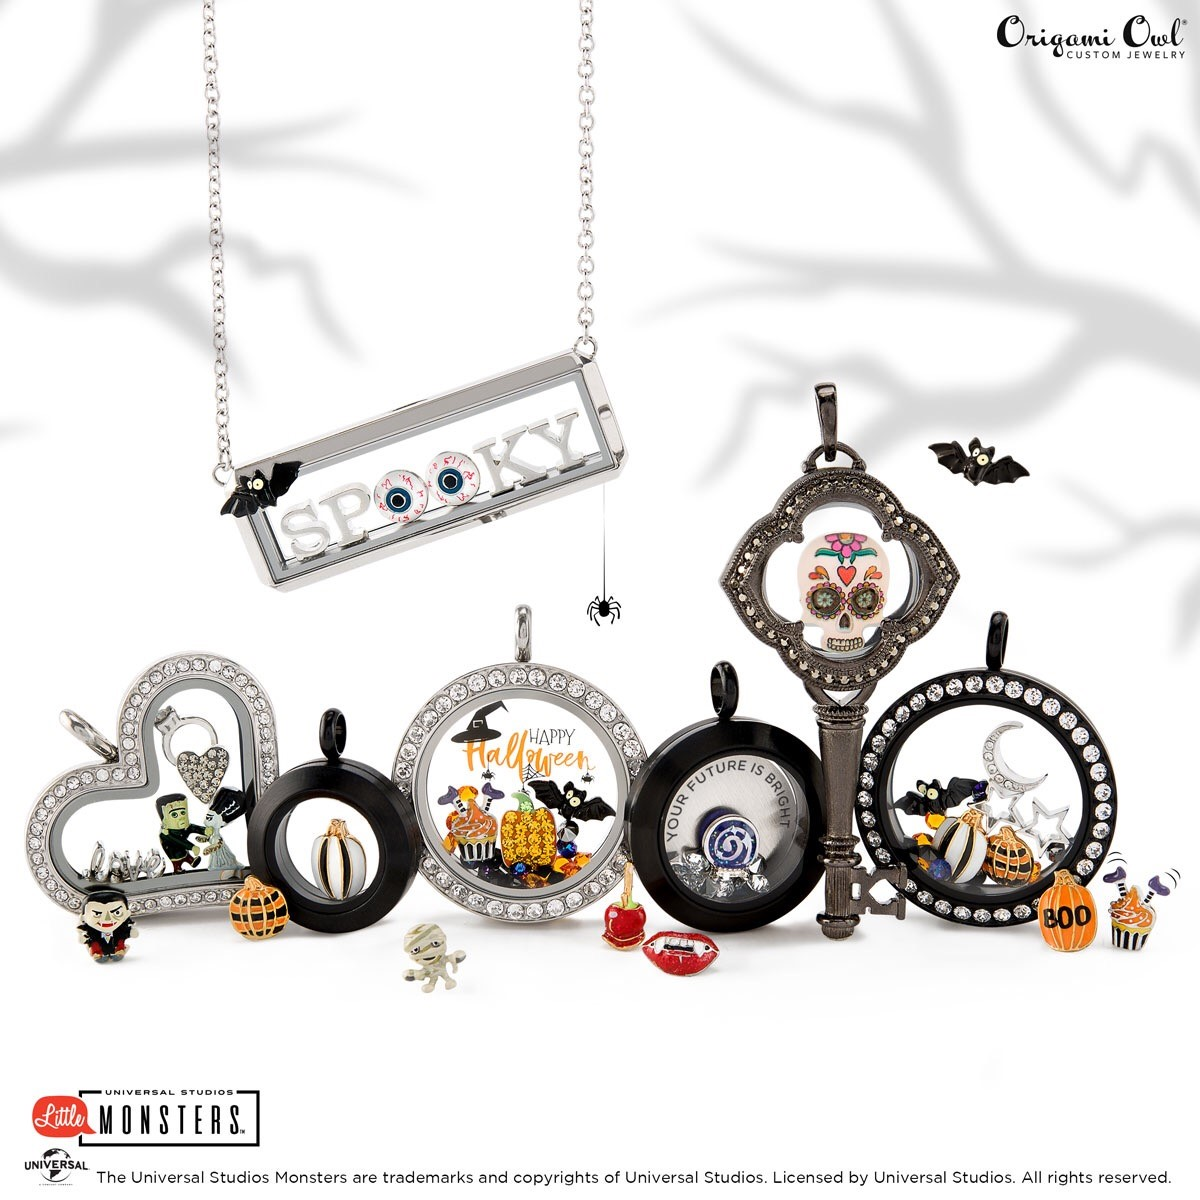 Origami Owl: as cool as it sounds - Lewis Center Mom | 1200x1200